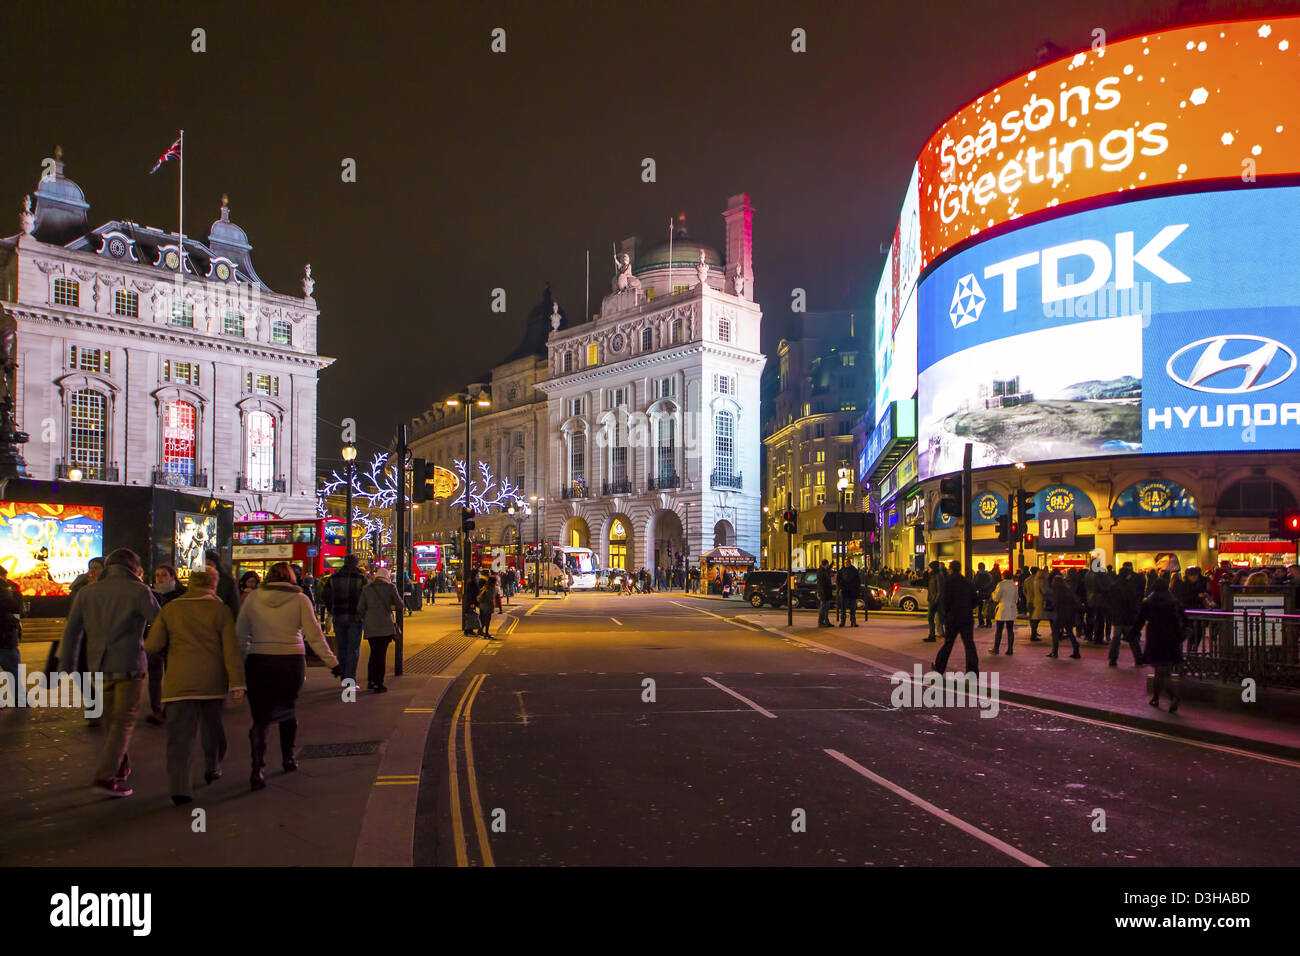 London, Piccadilly Circus, TDK, - Stock Image